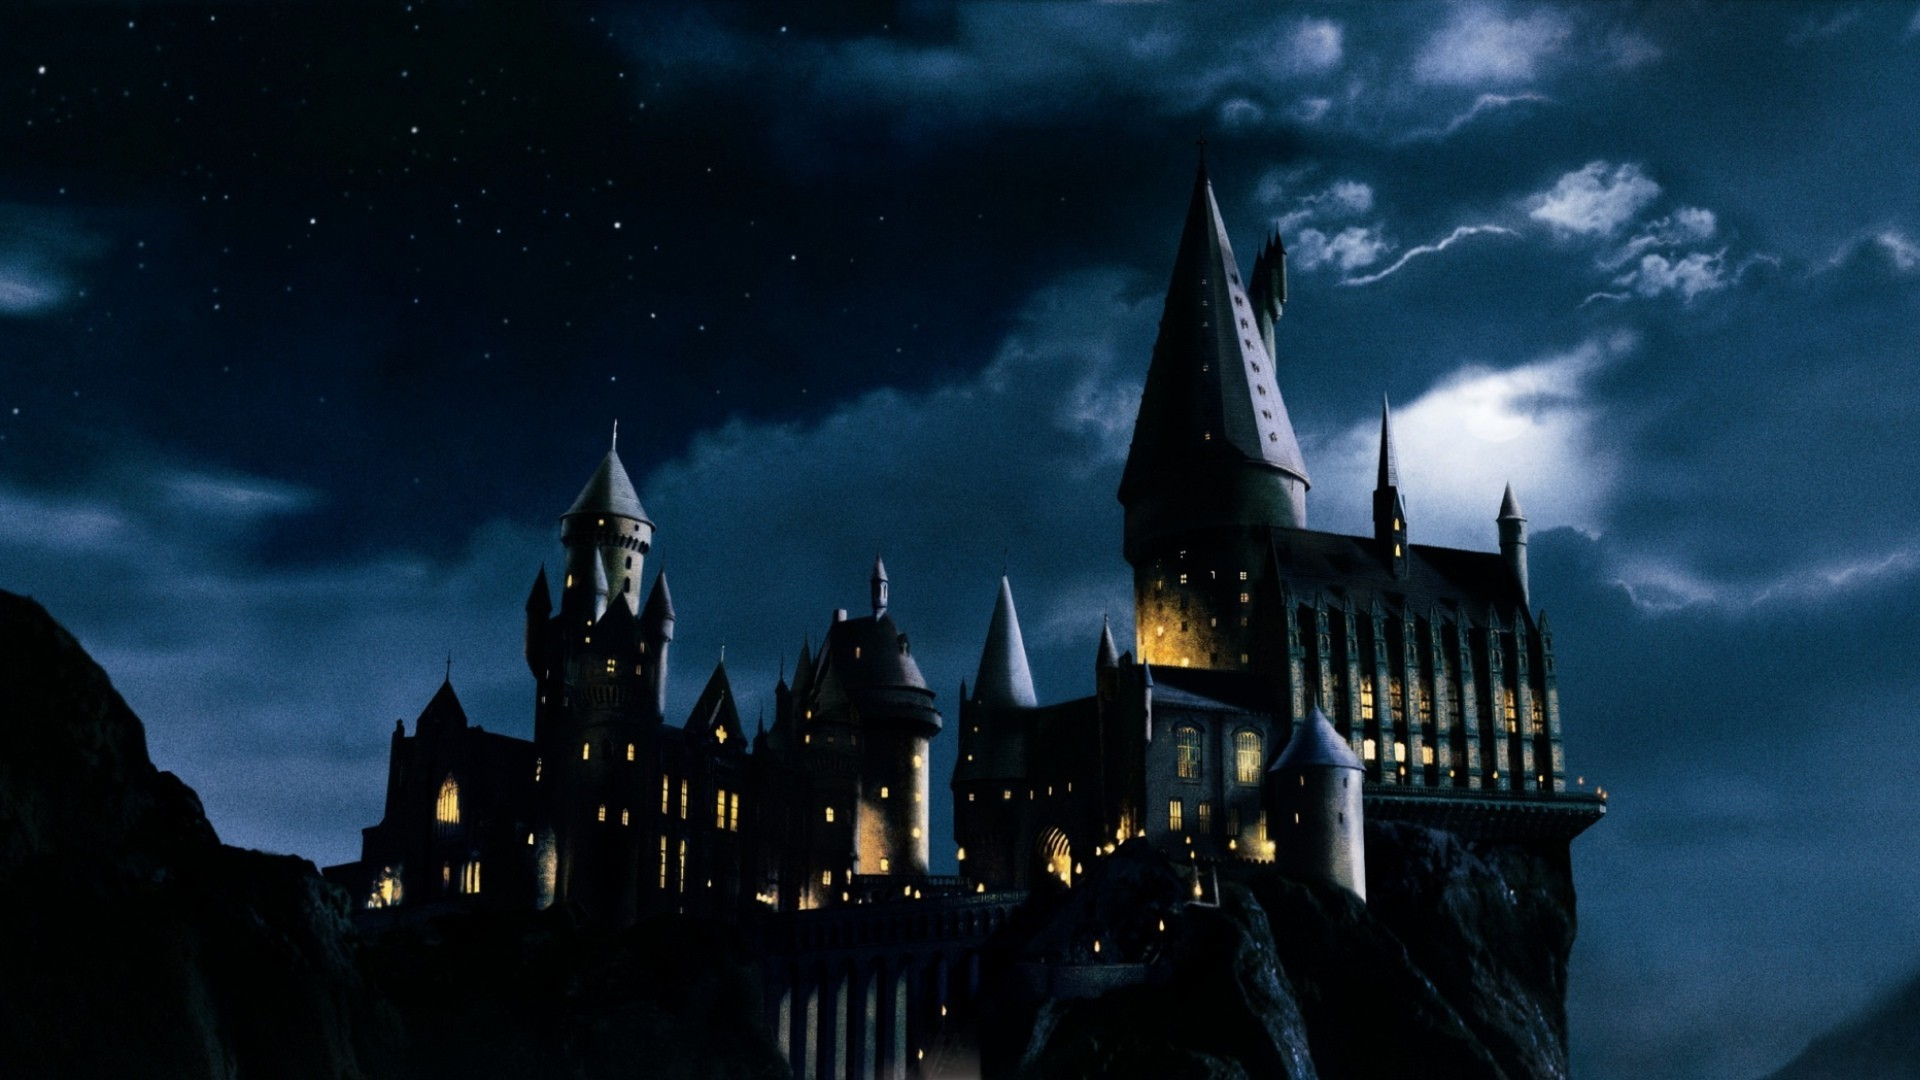 Hd wallpaper harry potter - Harry Potter Wallpaper Hogwarts Wallpaper